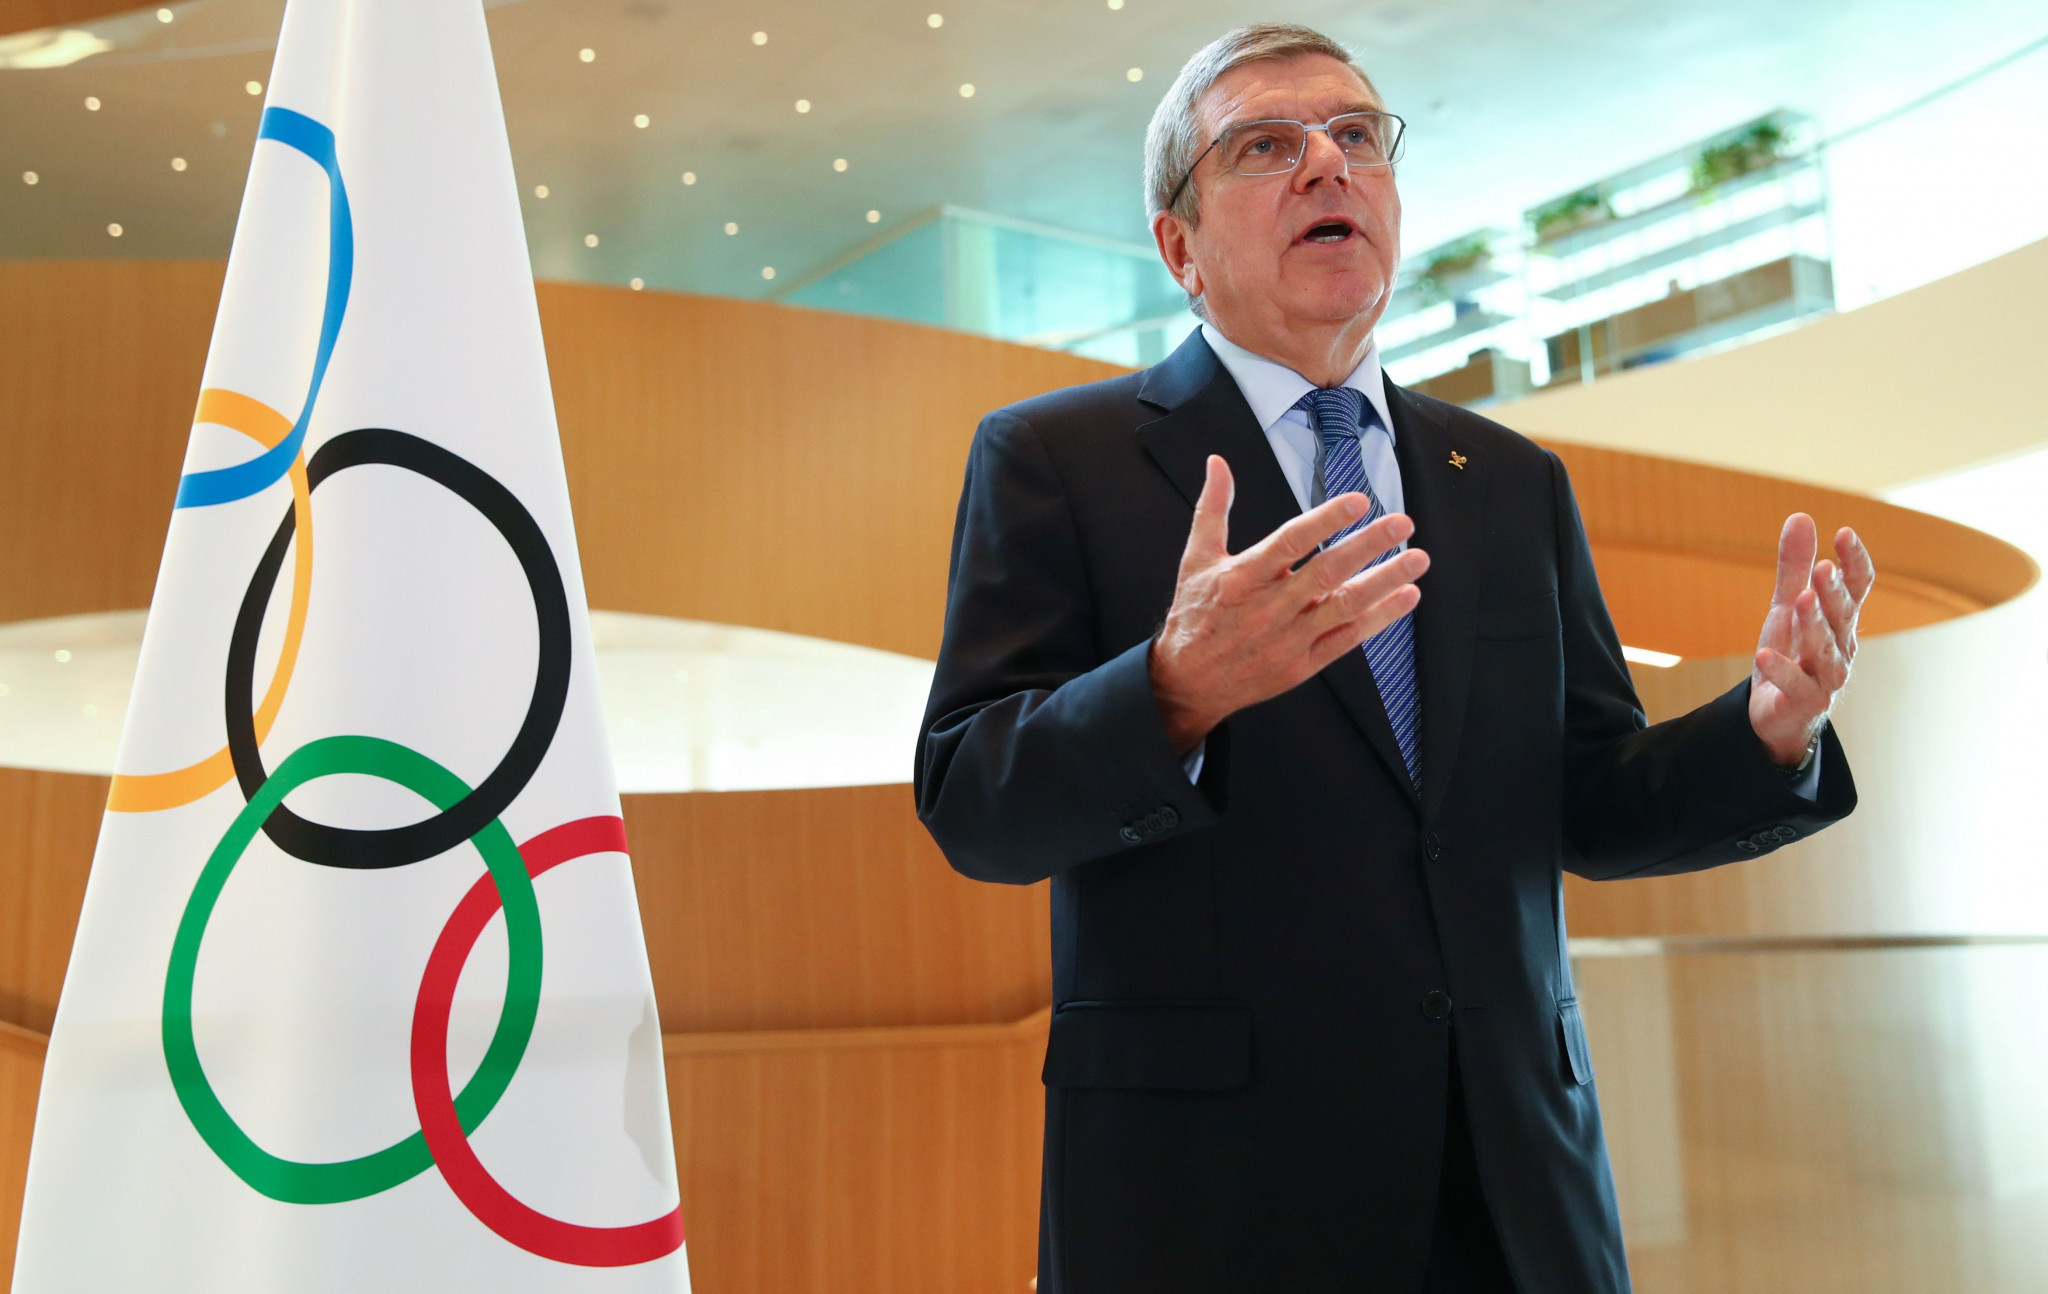 Paris 2024 organisers said today their altered approach was partly influenced by earlier comments from IOC President Thomas Bach ©Getty Images